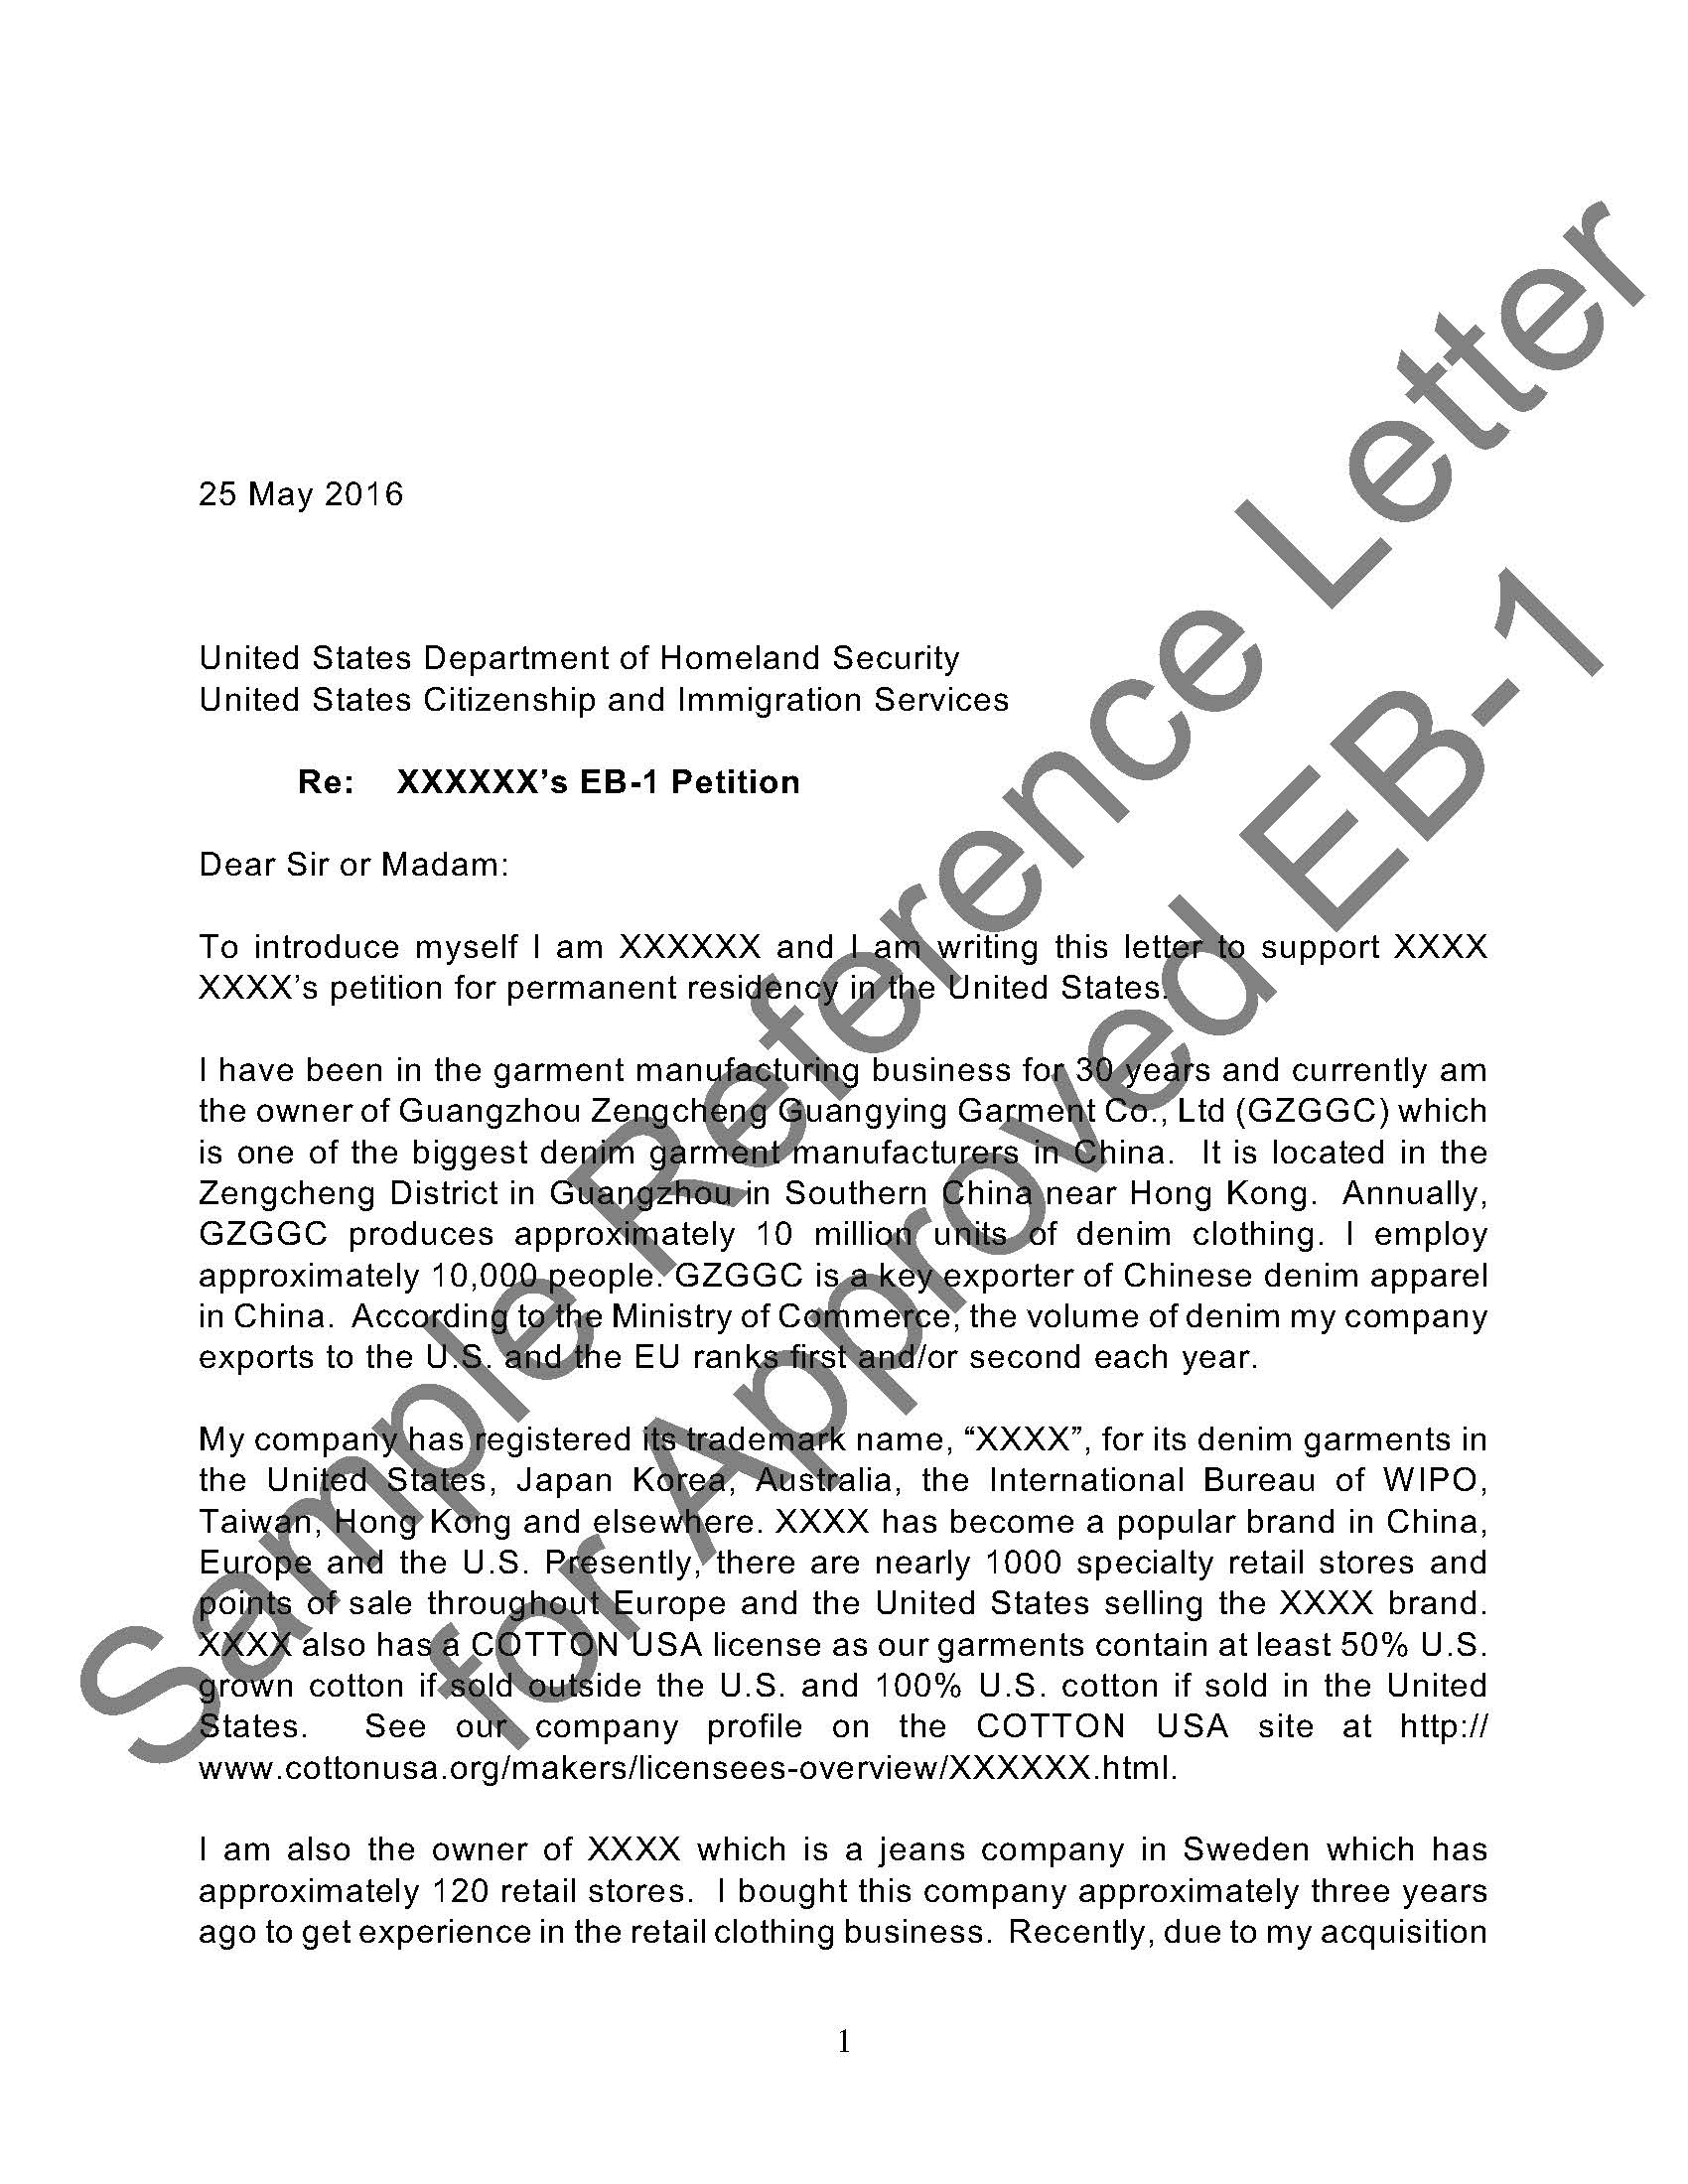 1st page Sample Reference Letter for Approved EB-1.jpg